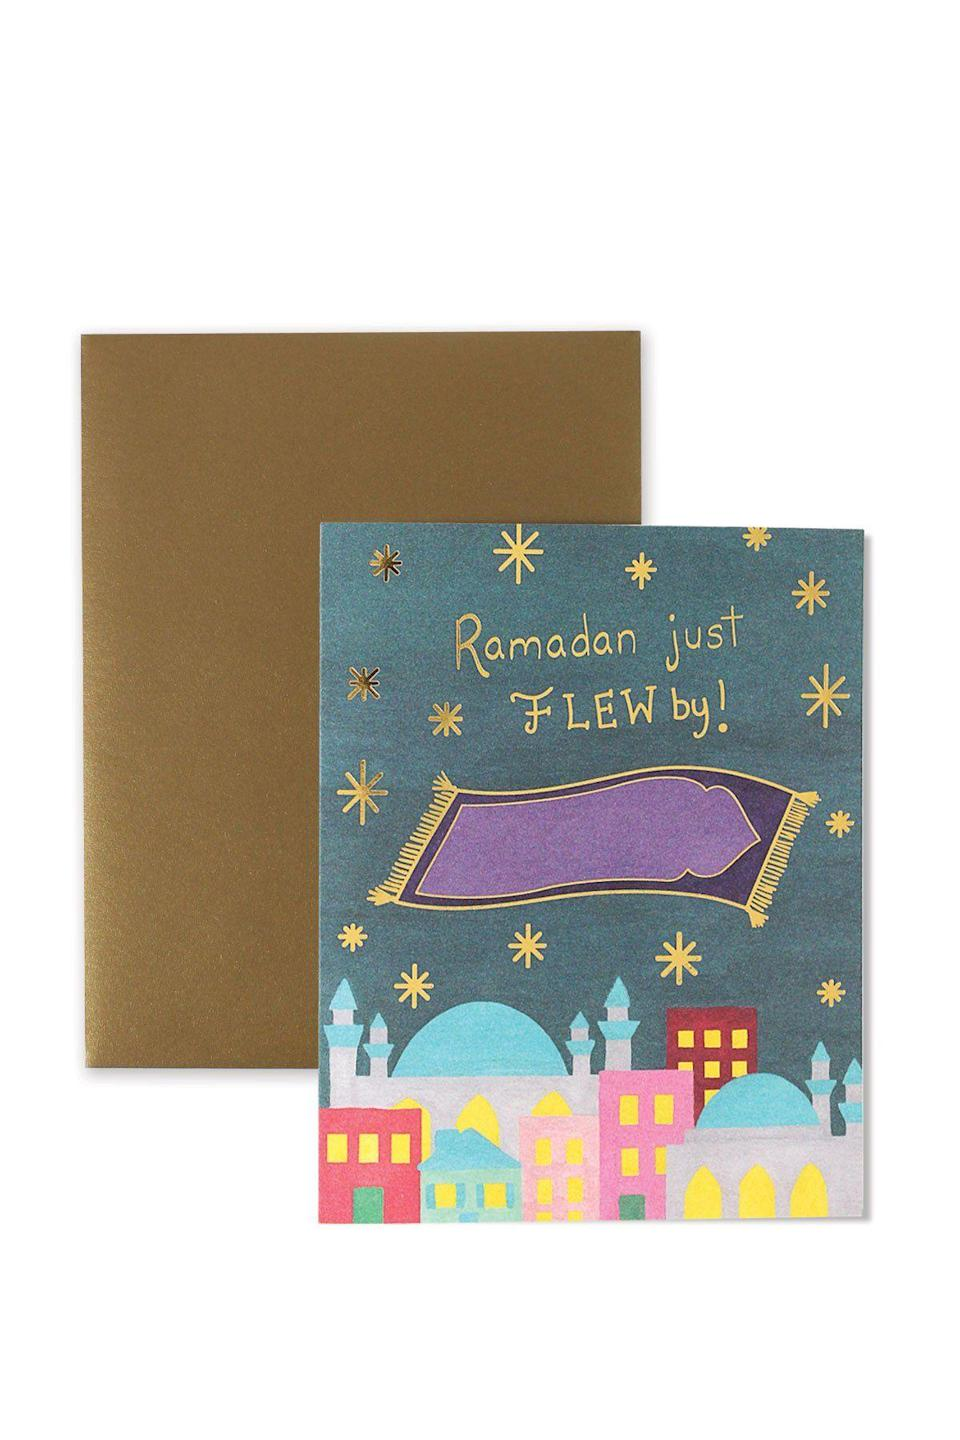 """<p><strong>Hello Holydays</strong></p><p>helloholydays.shop</p><p><strong>$4.95</strong></p><p><a href=""""https://helloholydays.shop/collections/greeting-cards-1/products/flew-by"""" rel=""""nofollow noopener"""" target=""""_blank"""" data-ylk=""""slk:Shop Now"""" class=""""link rapid-noclick-resp"""">Shop Now</a></p><p>While you might not expect cute greeting cards to be used as decor, the pieces designed by Manal Aman are often displayed around the house to usher in the spirit of the season. Mail 'em out to your loved ones with a sweet note, and they'll definitely have them on display in their own homes, too.</p>"""